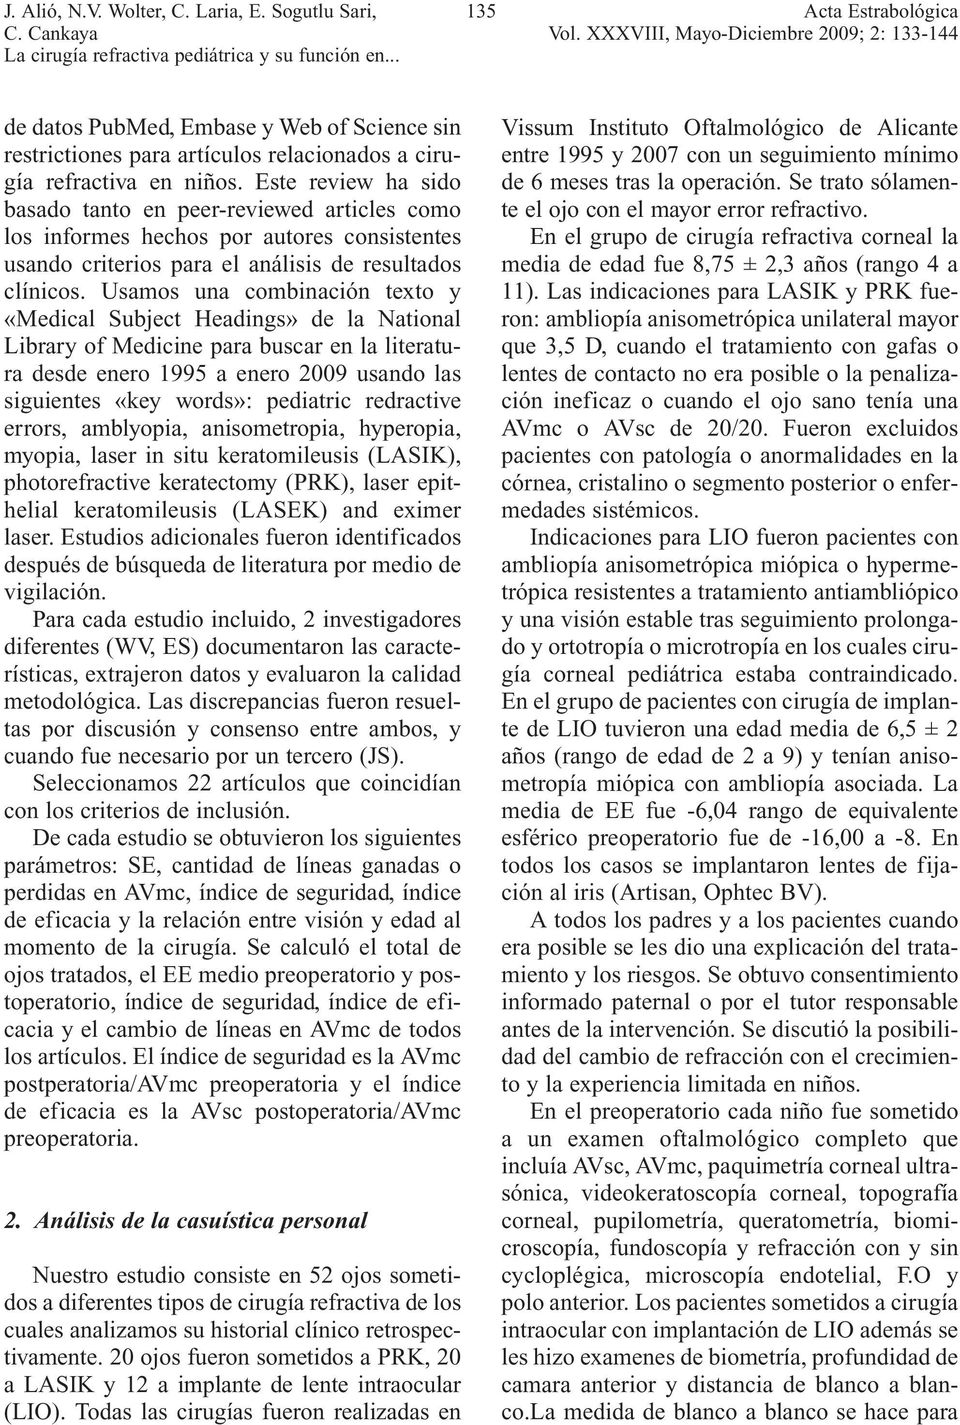 Usamos una combinación texto y «Medical Subject Headings» de la National Library of Medicine para buscar en la literatura desde enero 1995 a enero 2009 usando las siguientes «key words»: pediatric